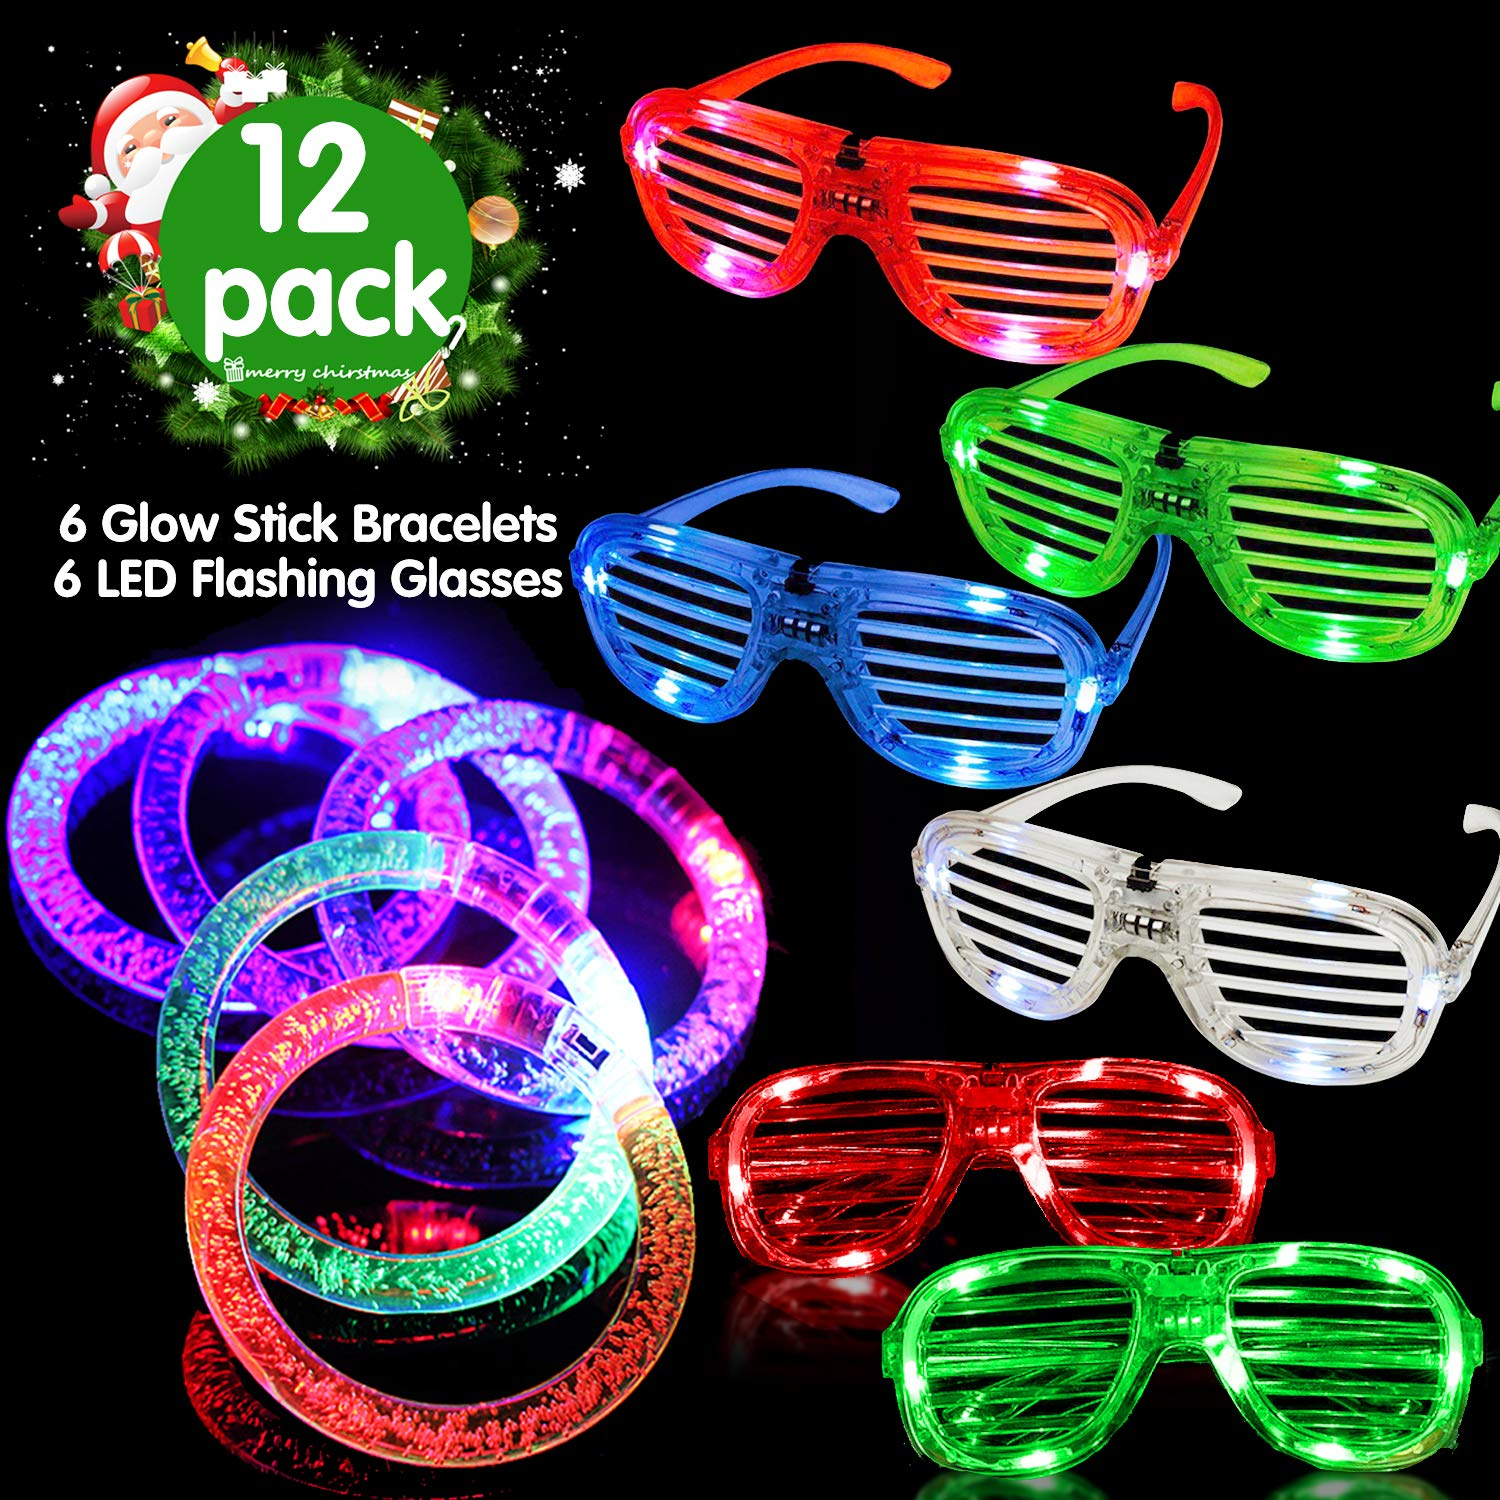 2019 New Year Eve Light Up Toys Christmas Glow in the Dark Party Favors 6 LED Flashing Glasses 6 Glowing Stick Bracelets for Kids Boys Girls Birthday Gifts Ugly Xmas Dress Up Accessories 12 Pack